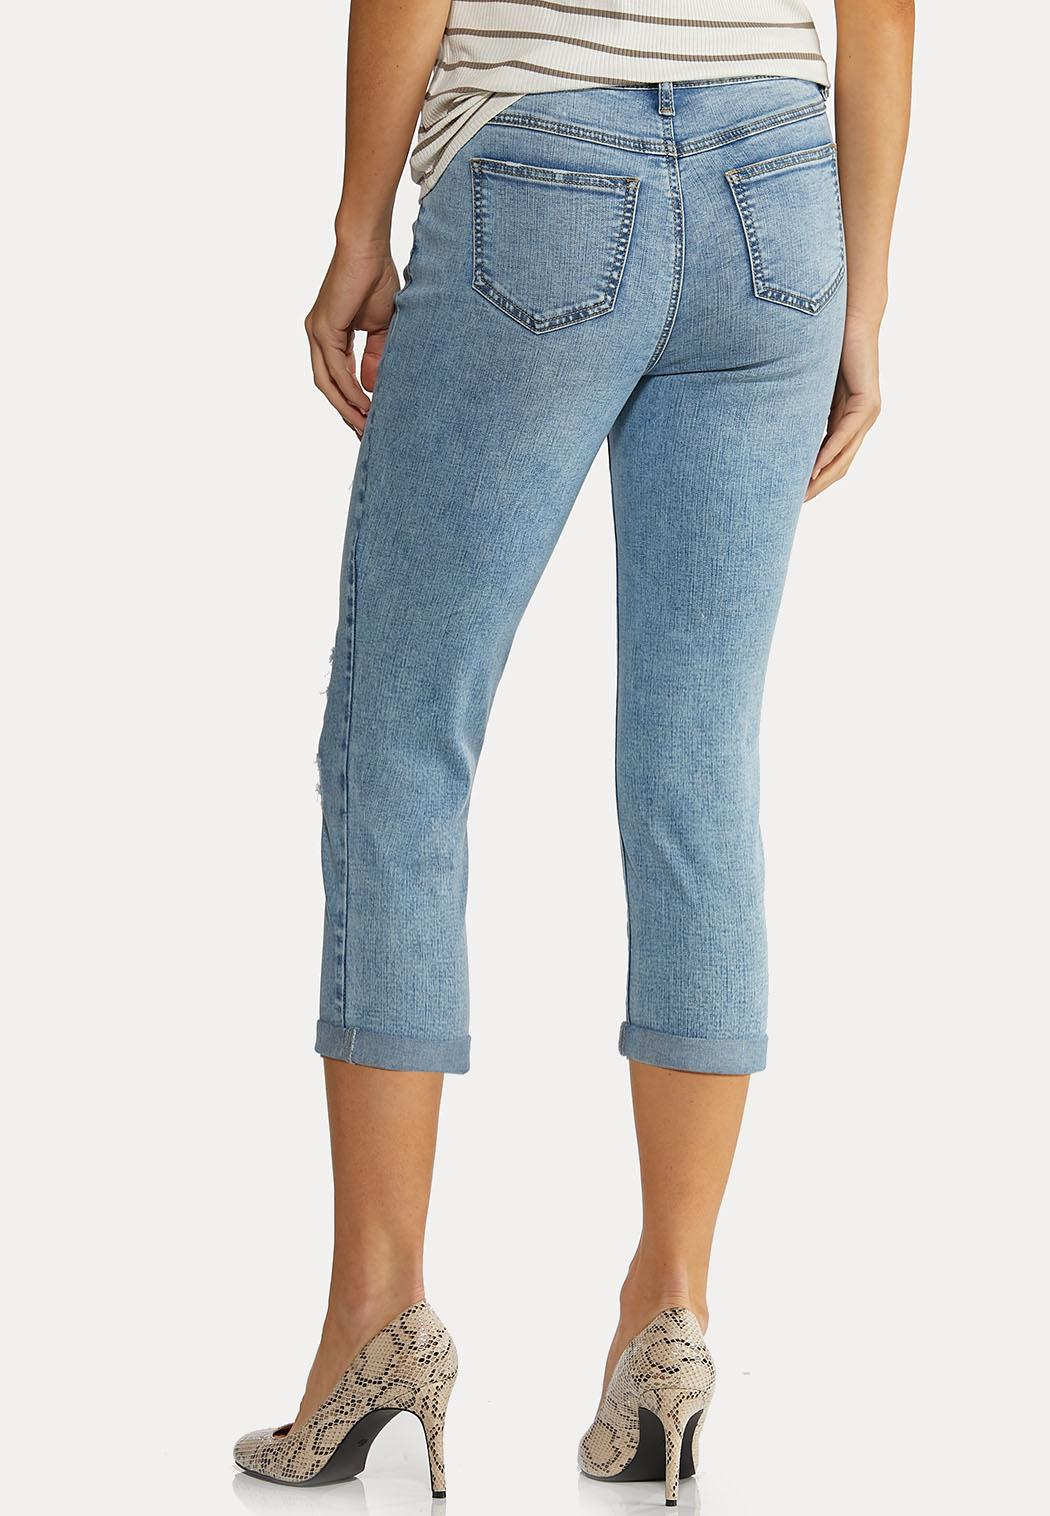 Cropped Distressed Jeans (Item #44184810)